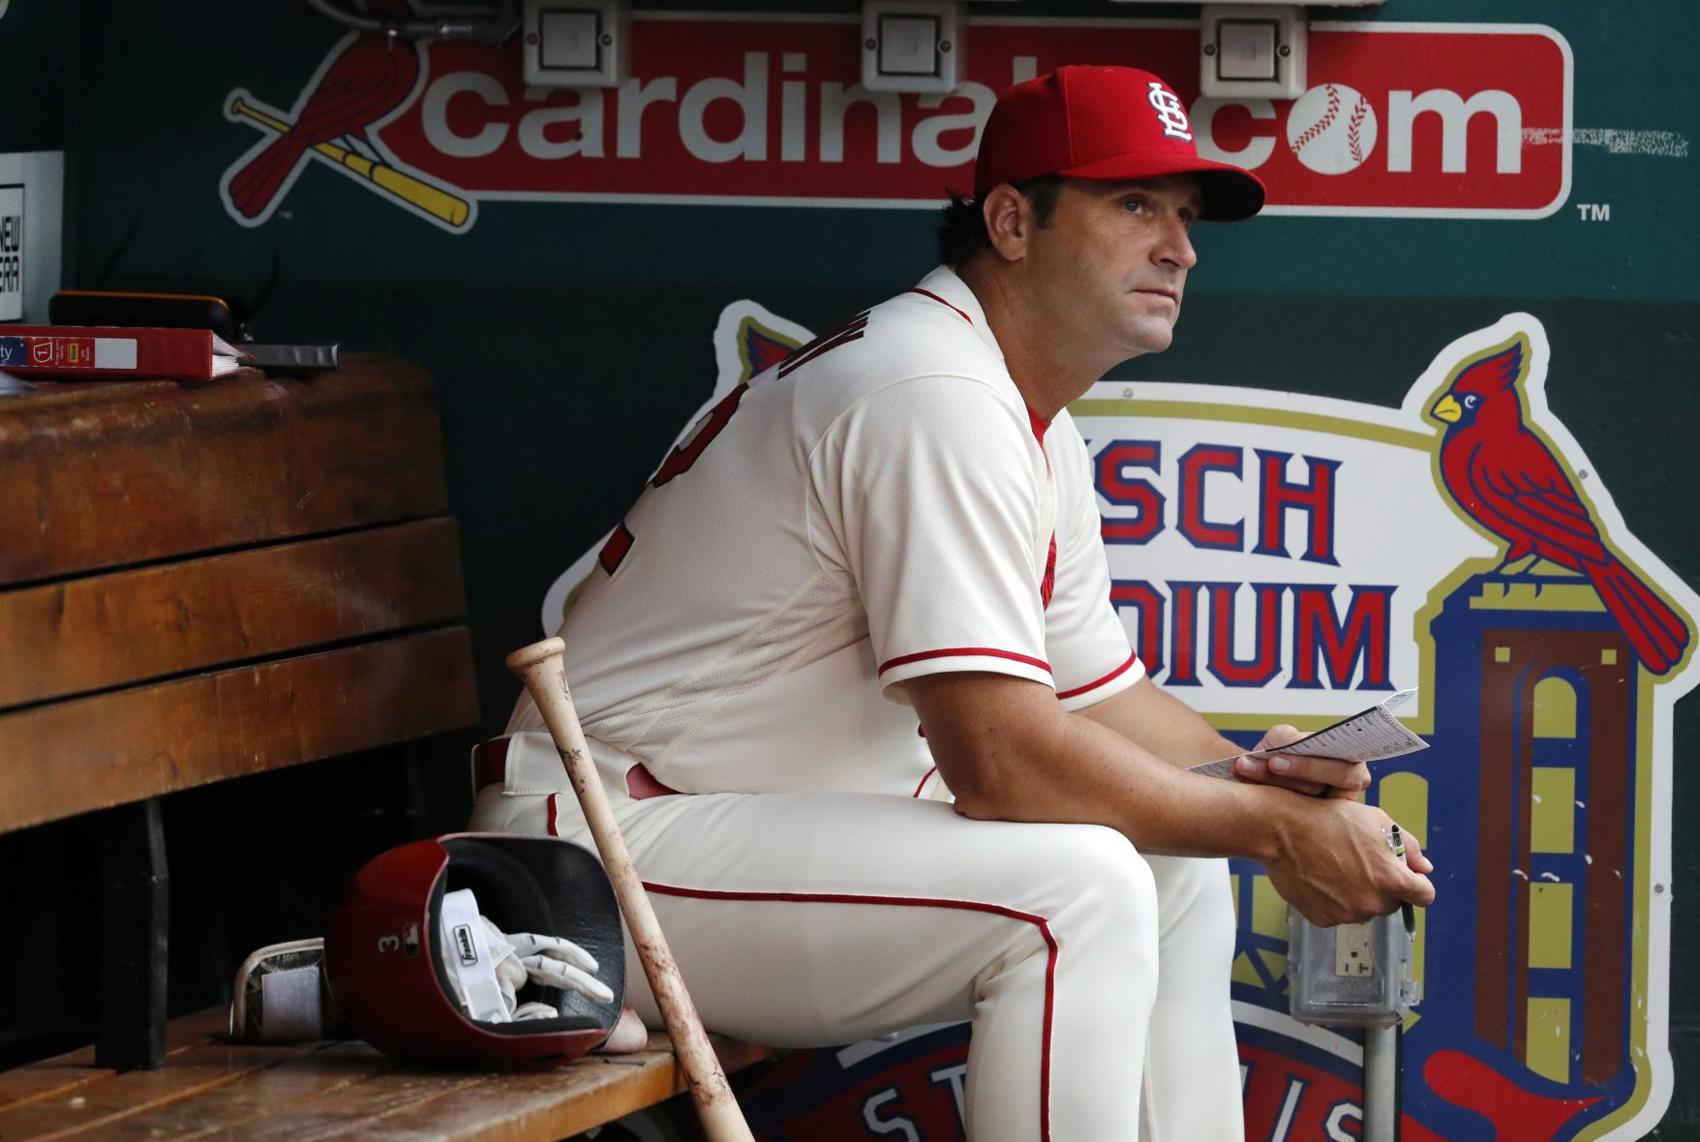 2018: Matheny, before the start of his last game with the team